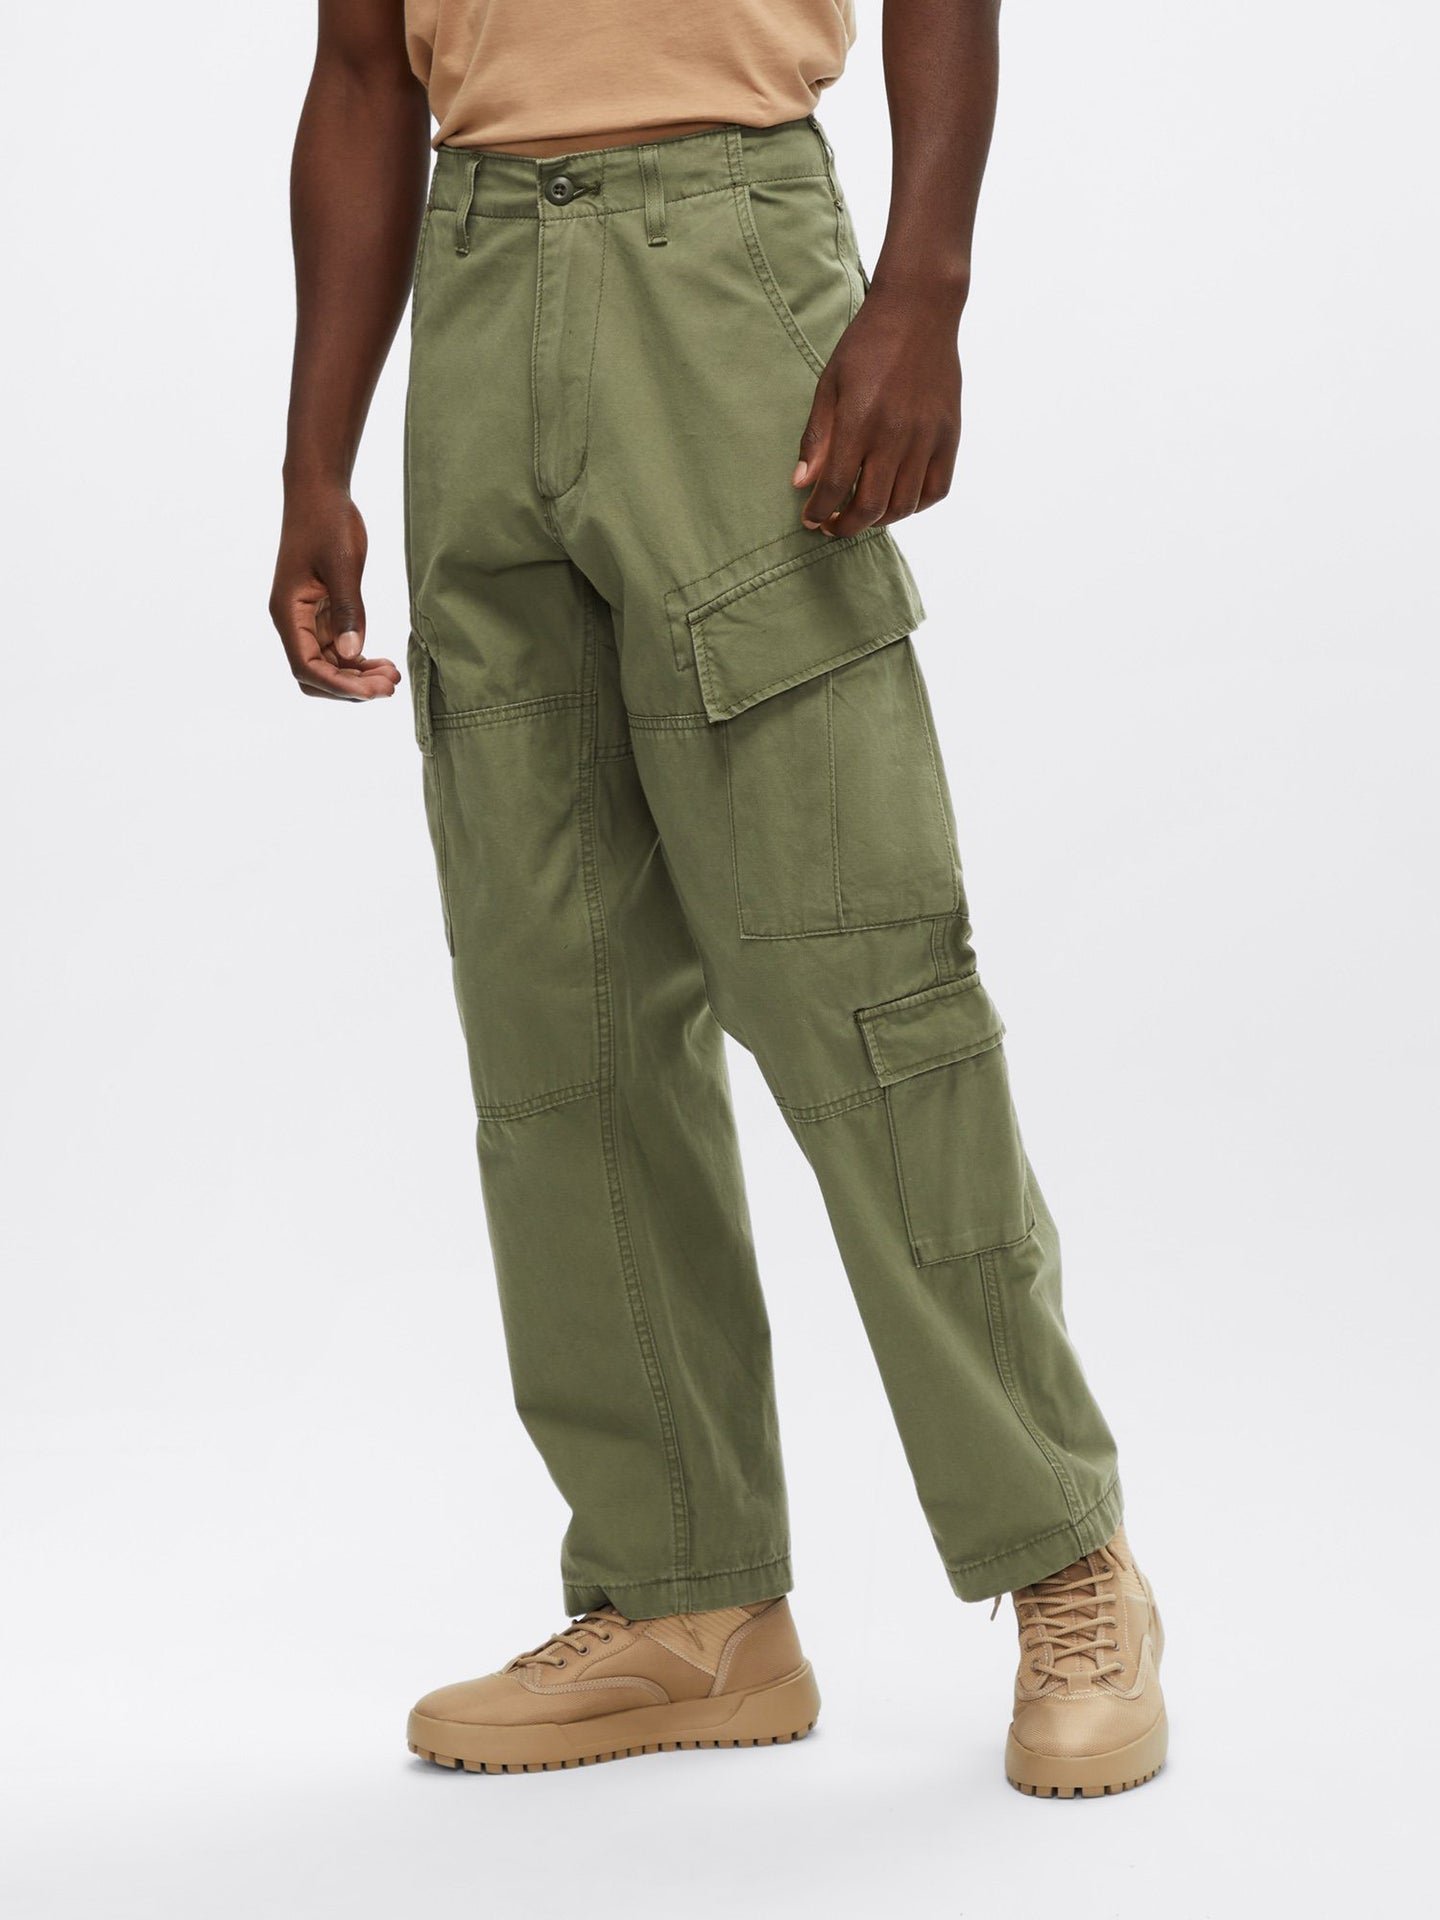 A.C.U. TYPE CARGO PANT BOTTOM Alpha Industries, Inc. OLIVE L